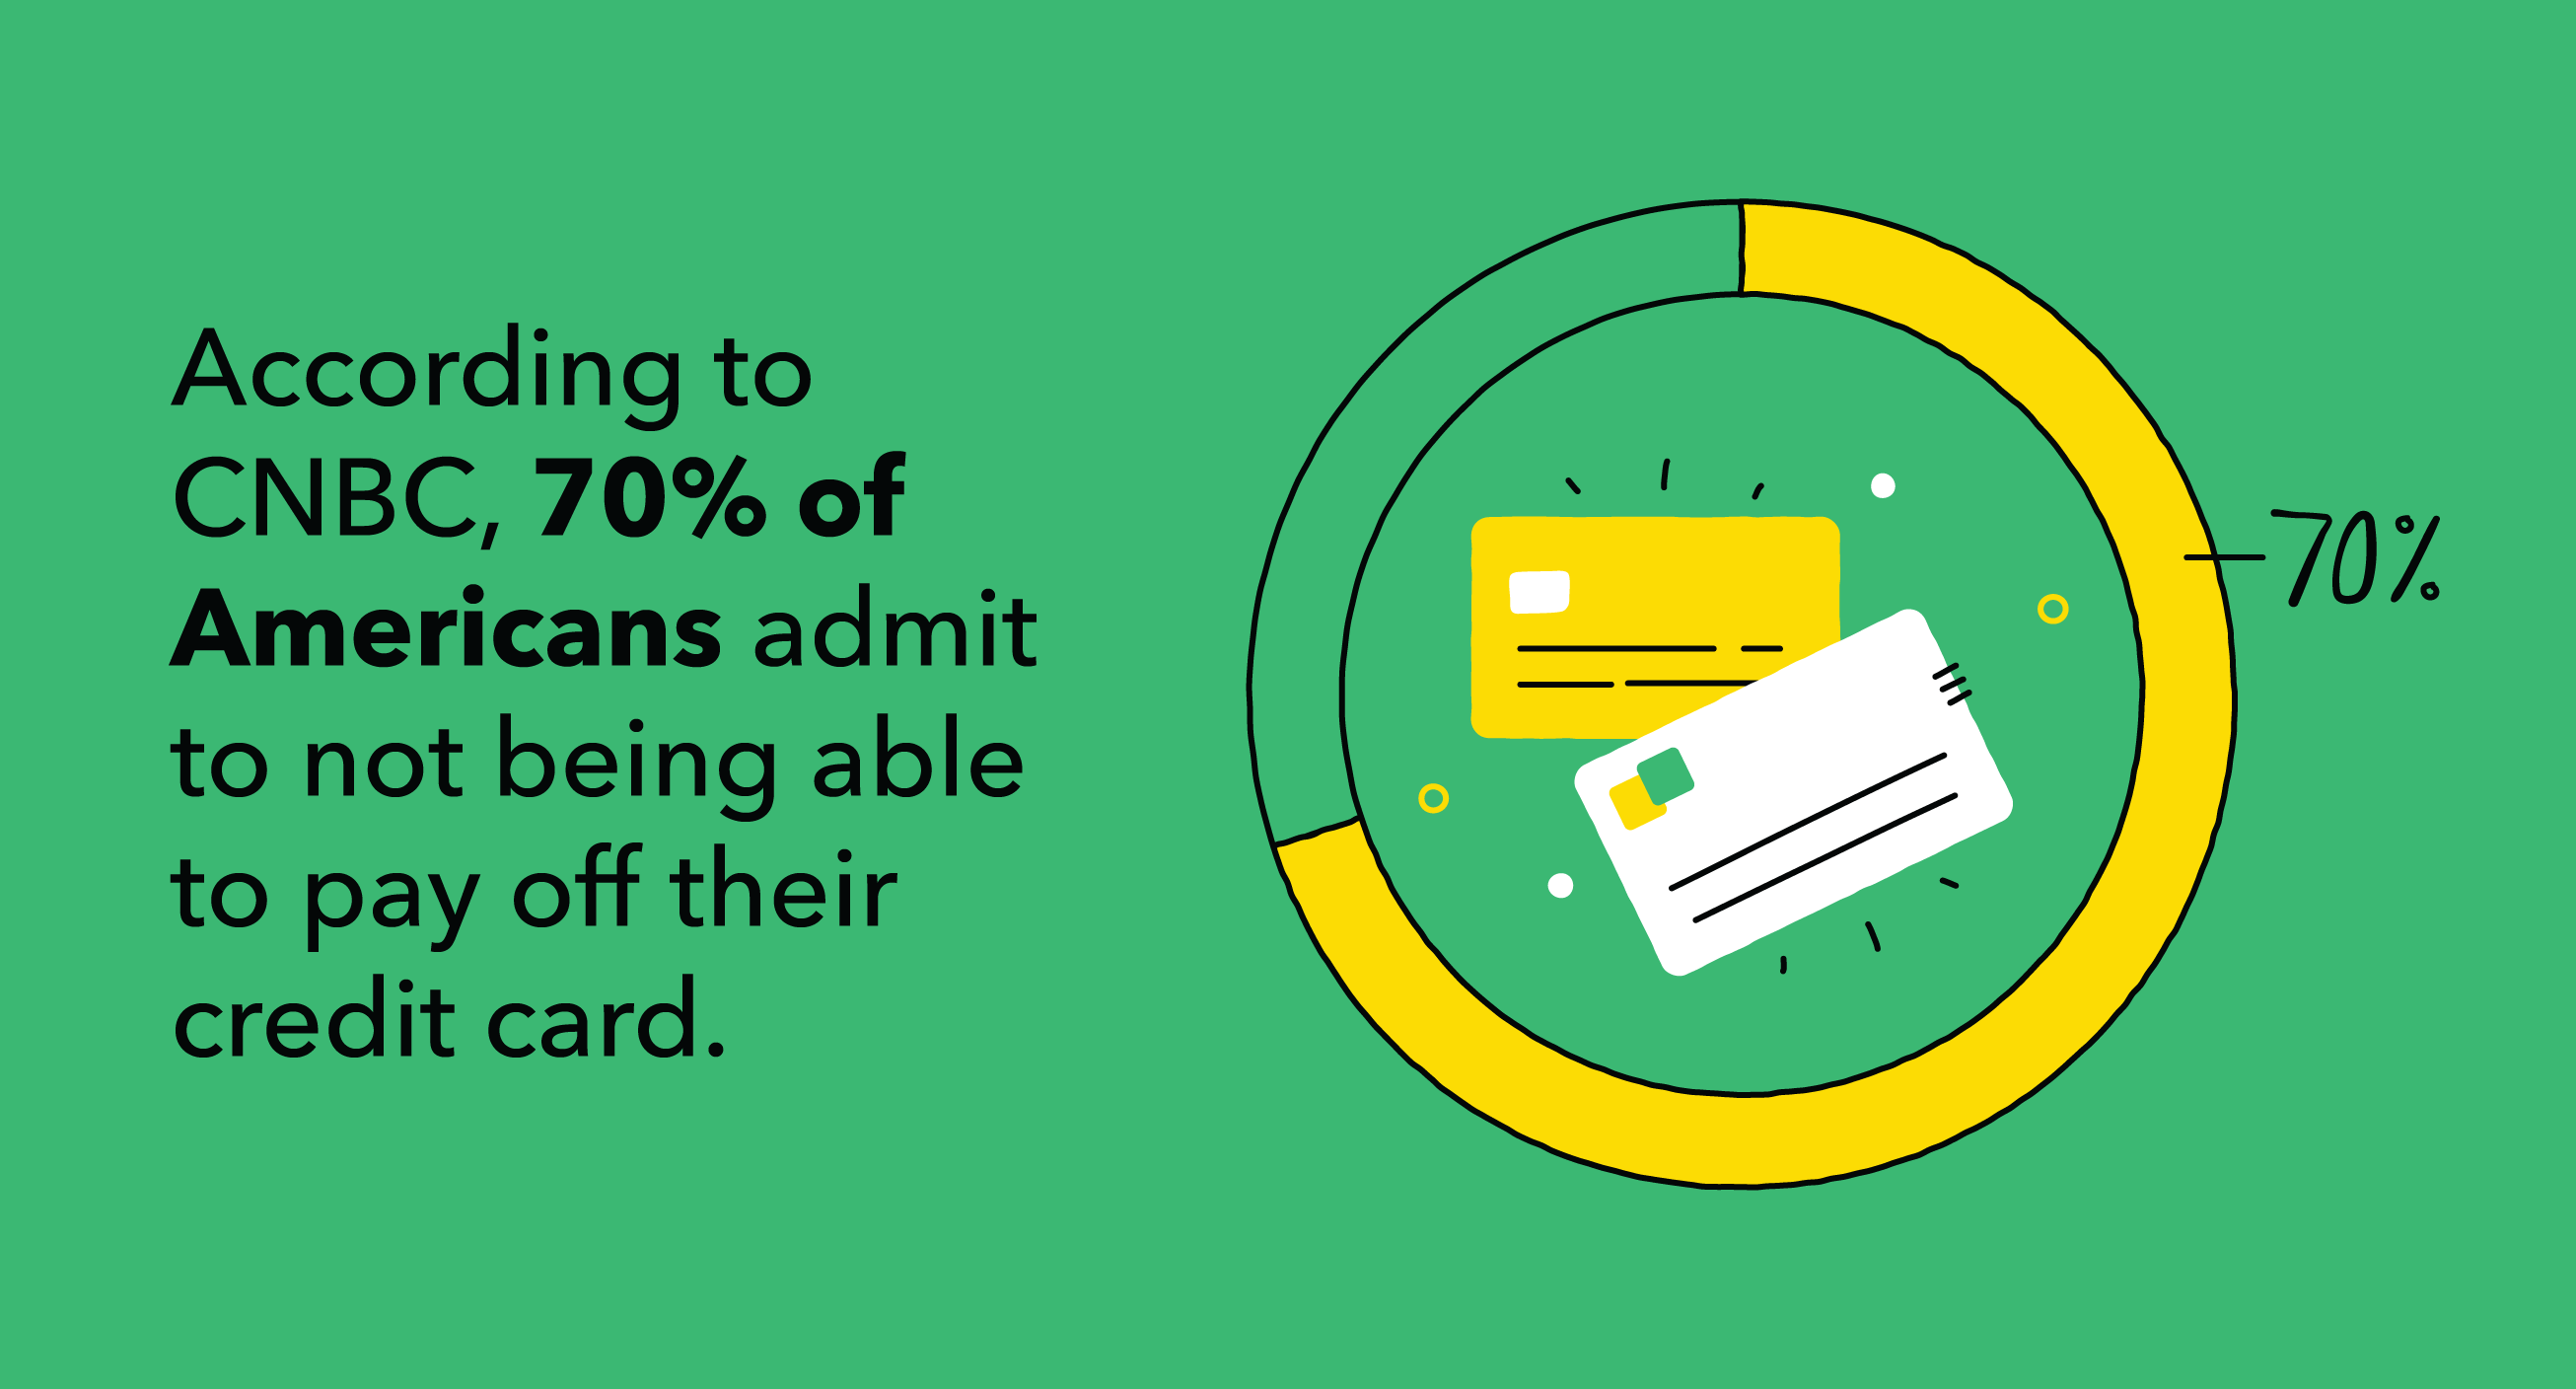 According to CNBC, 70% of Americans admit to not being able to pay off their credit card.